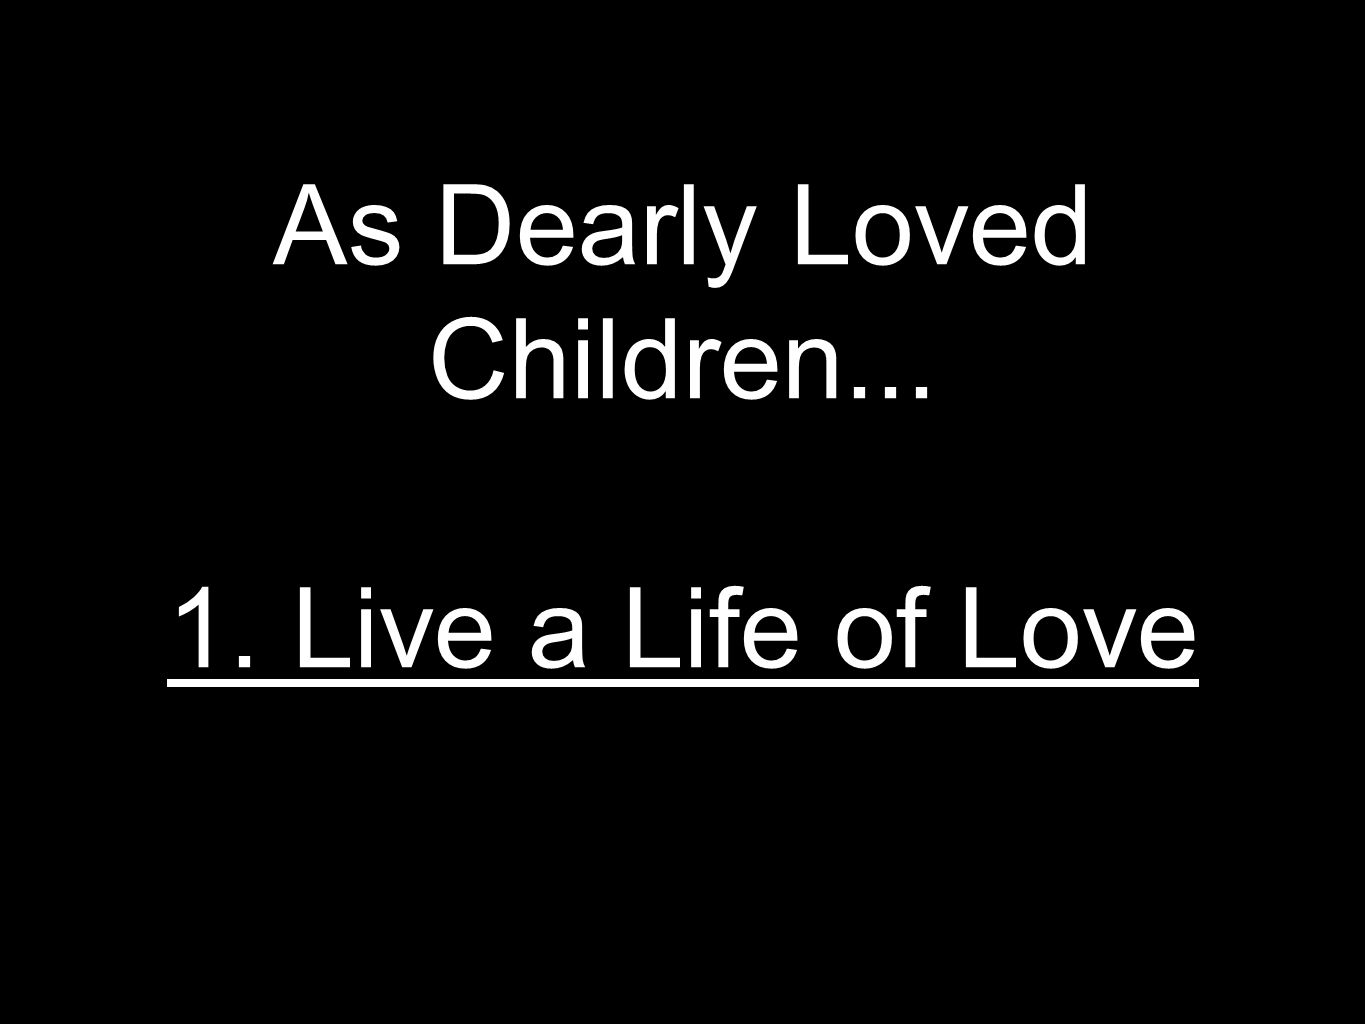 As Dearly Loved Children Live a Life of Love